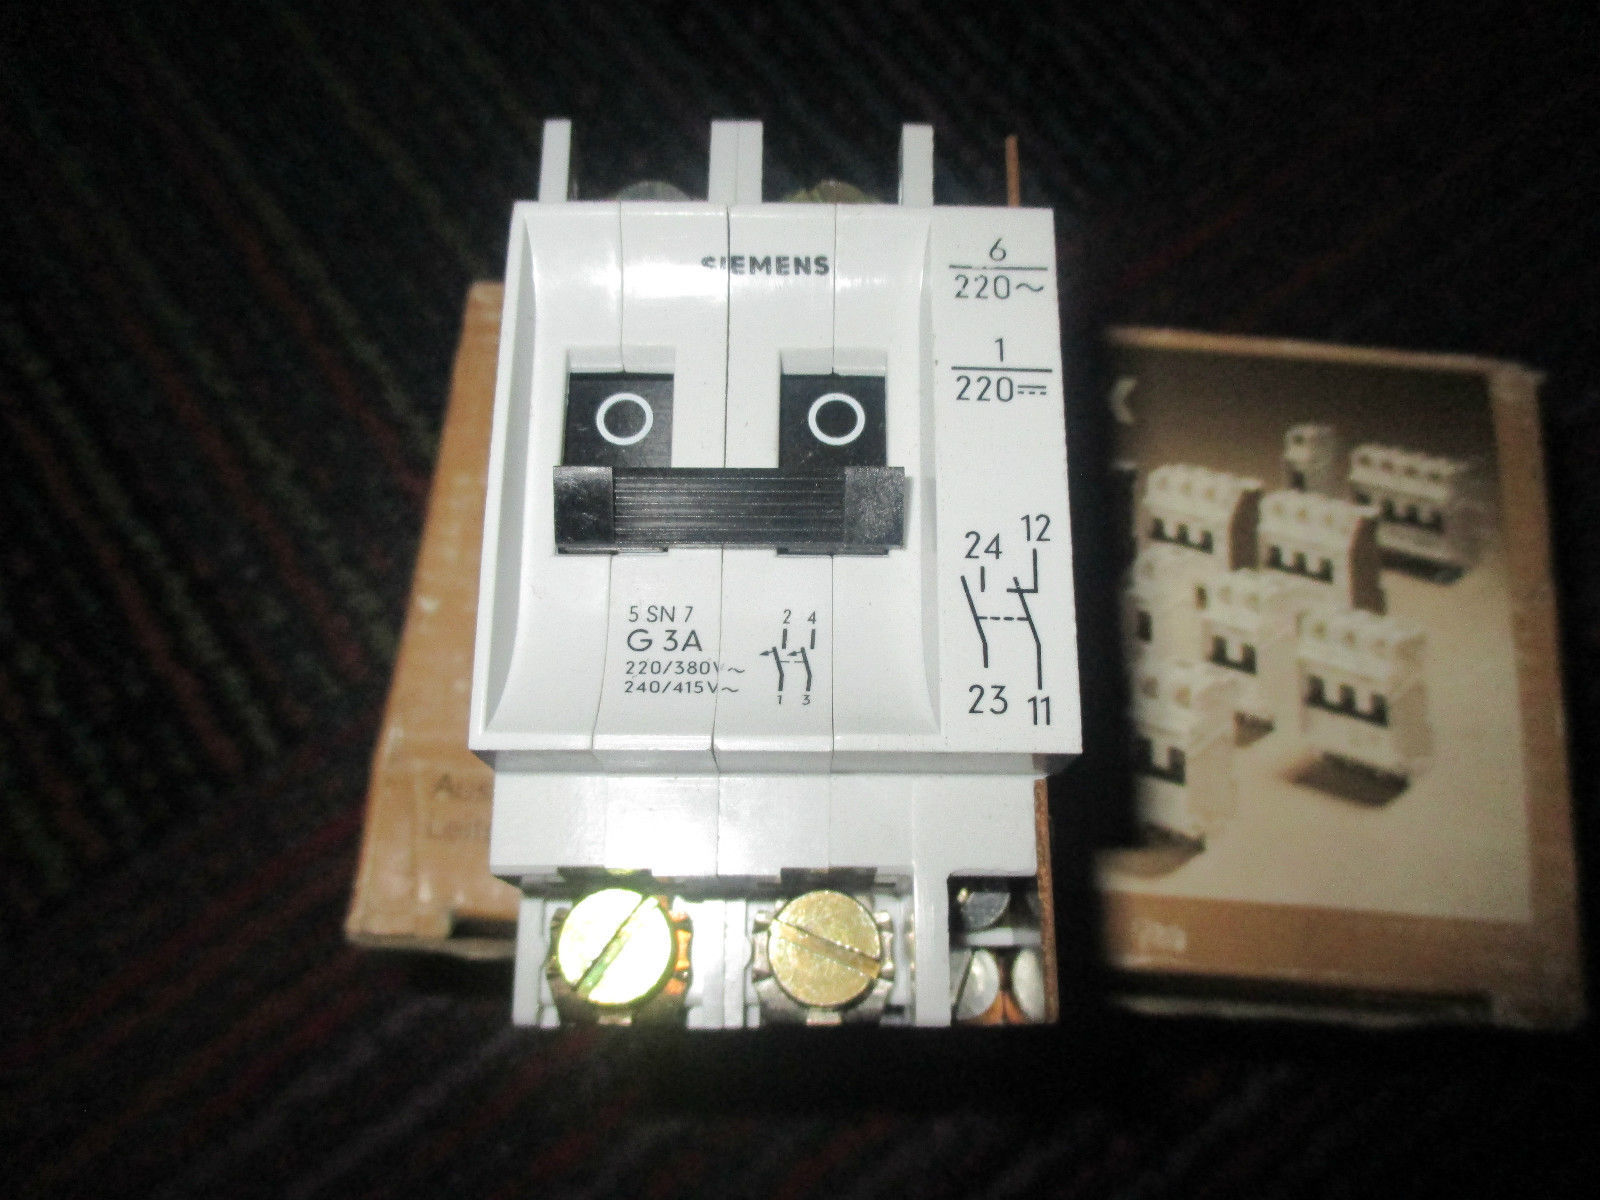 New Siemens 2 Pole With Auxiliary Contact And 16 Similar Items 5a Mini Circuit Breaker 5sn7 G3a